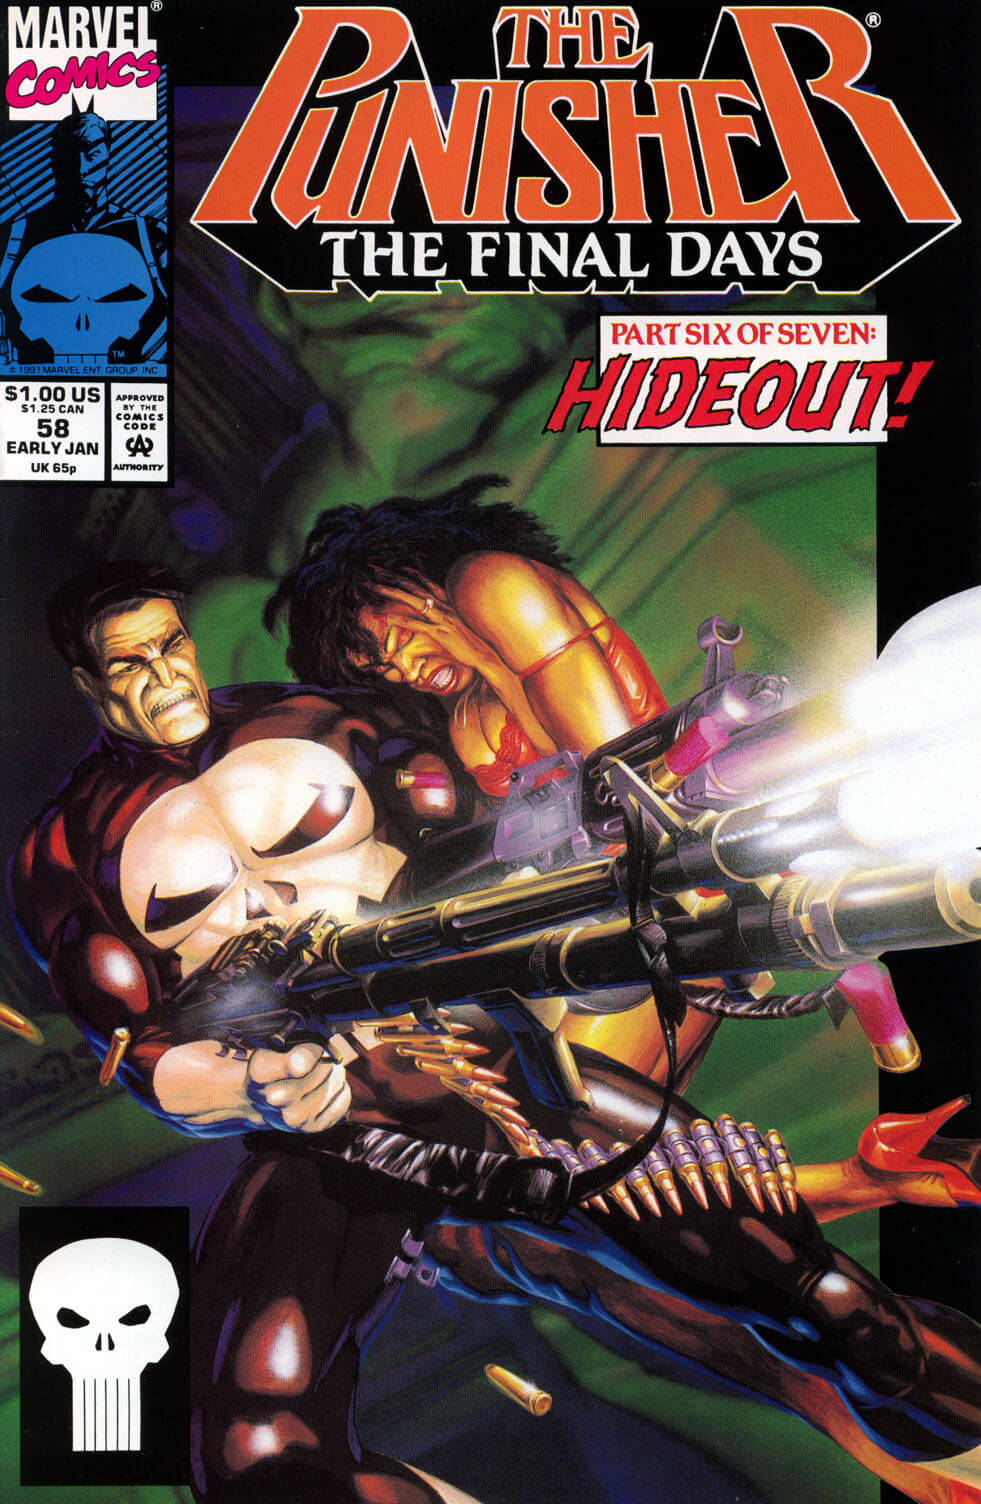 The Punisher Vol 2 #58